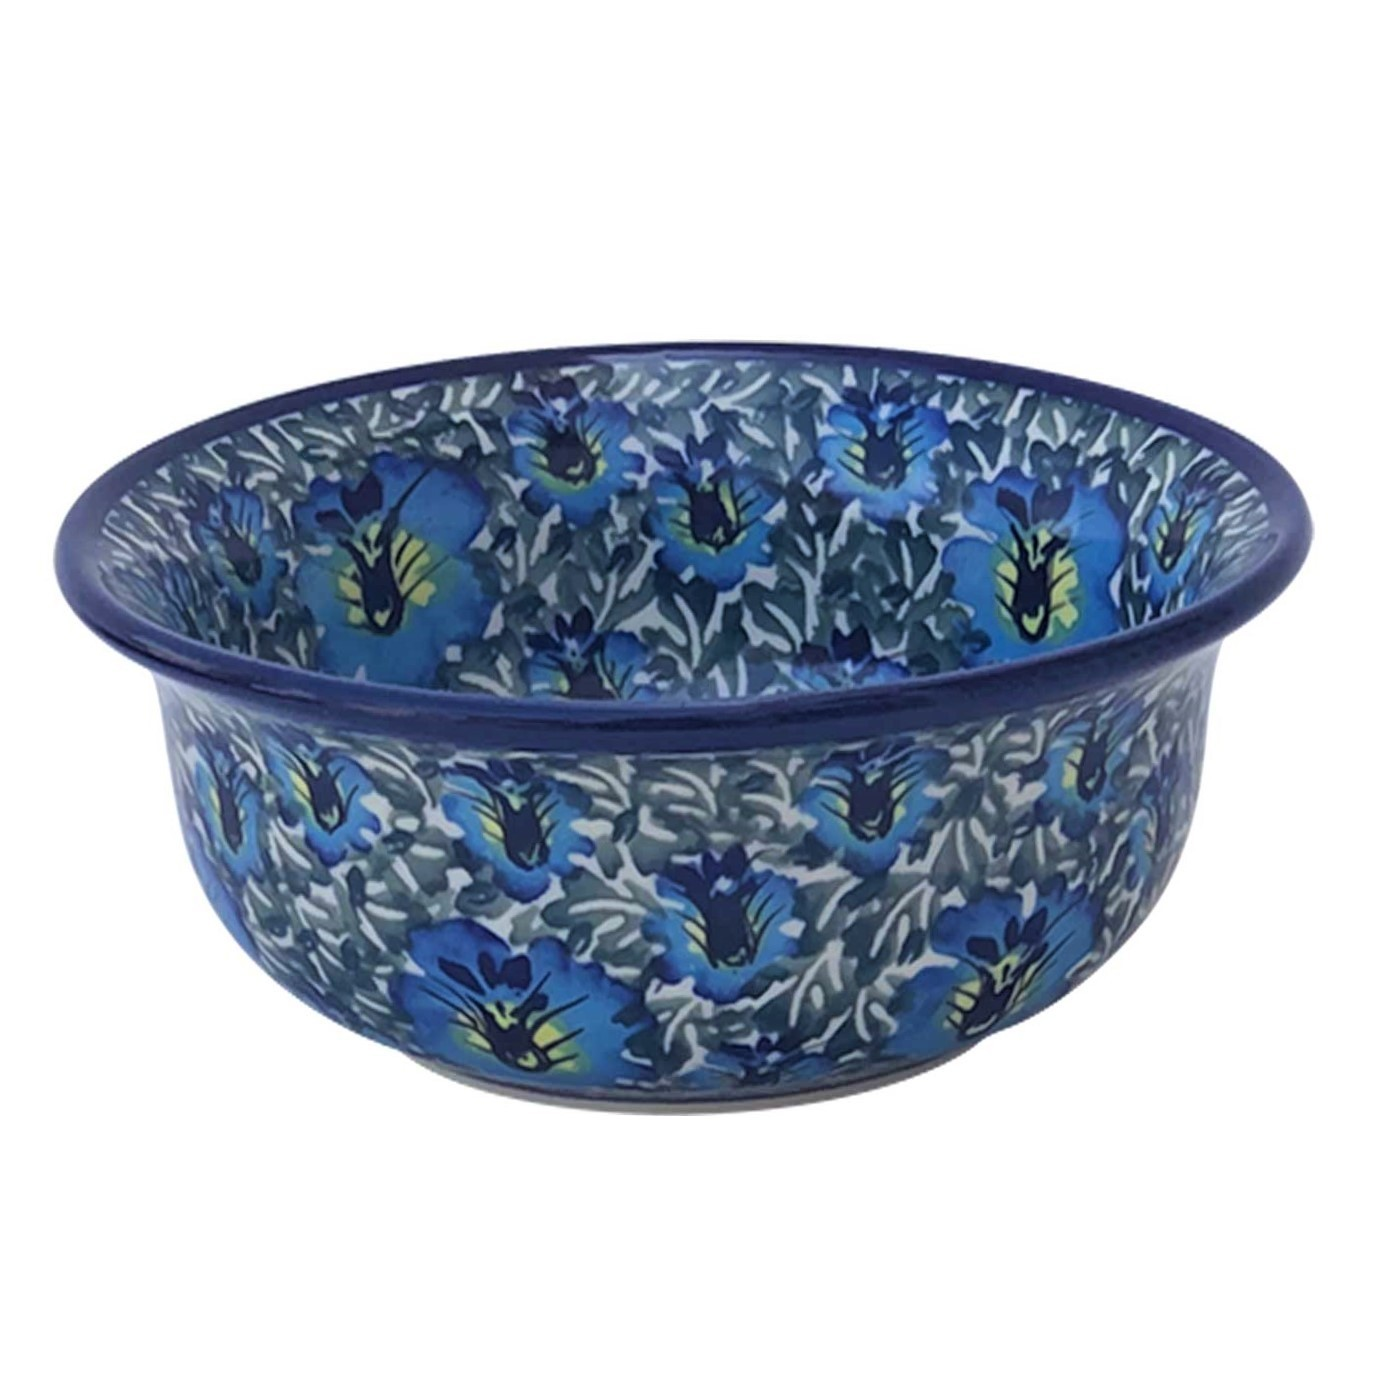 Pottery Avenue 17-oz Flared Top Stoneware Bowl - 1605-313AR Blue Lagoon